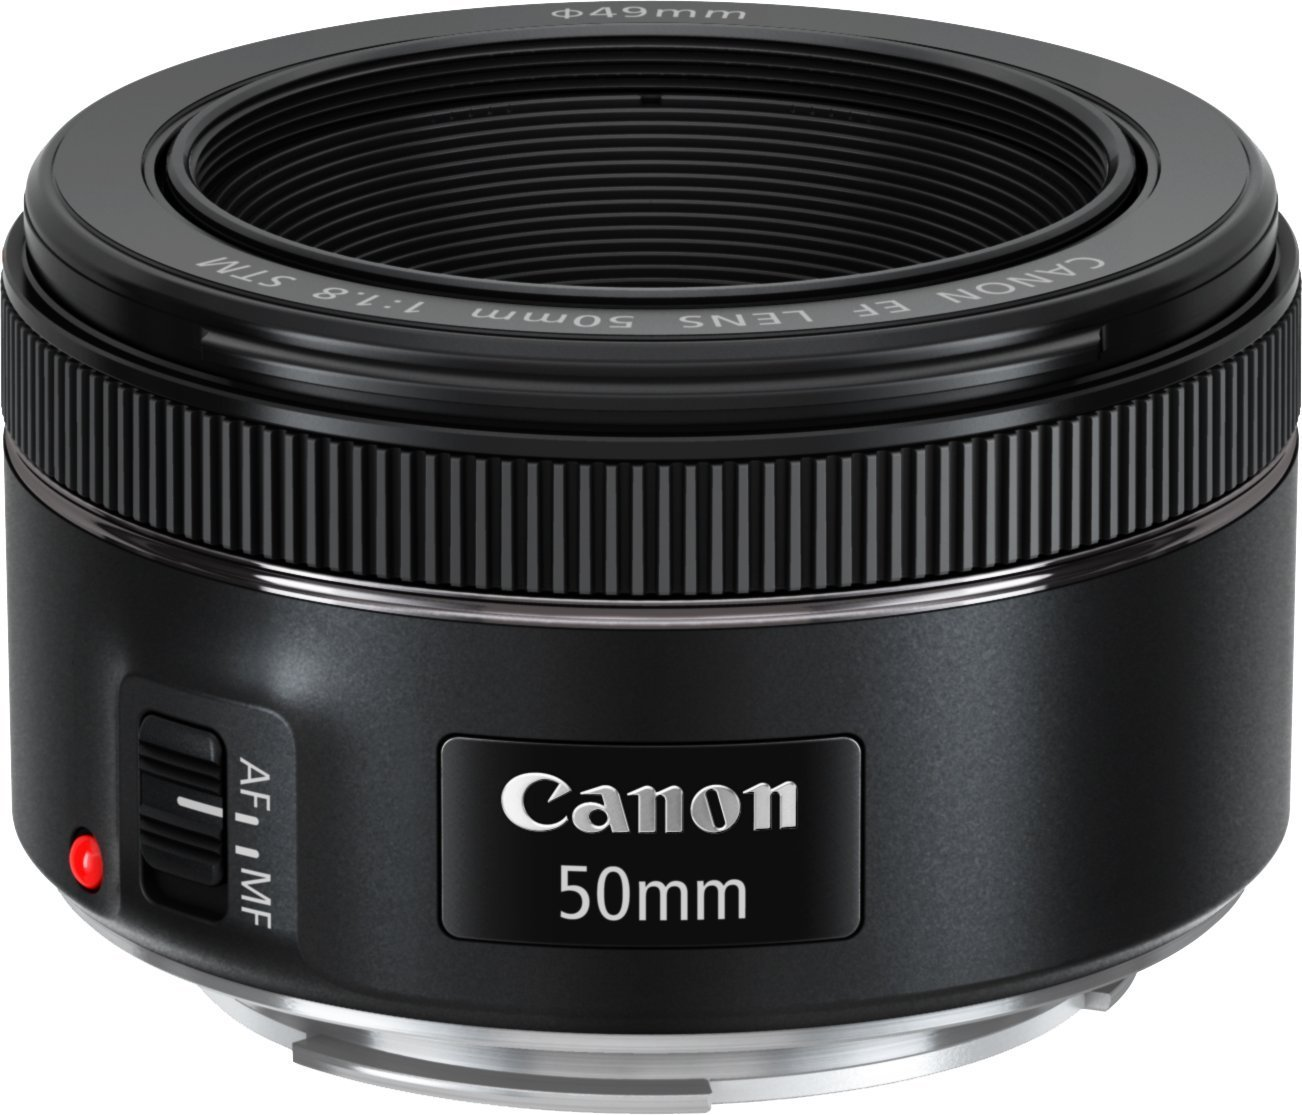 Canon EF 50mm f/1.8 STM Lens International Version 0